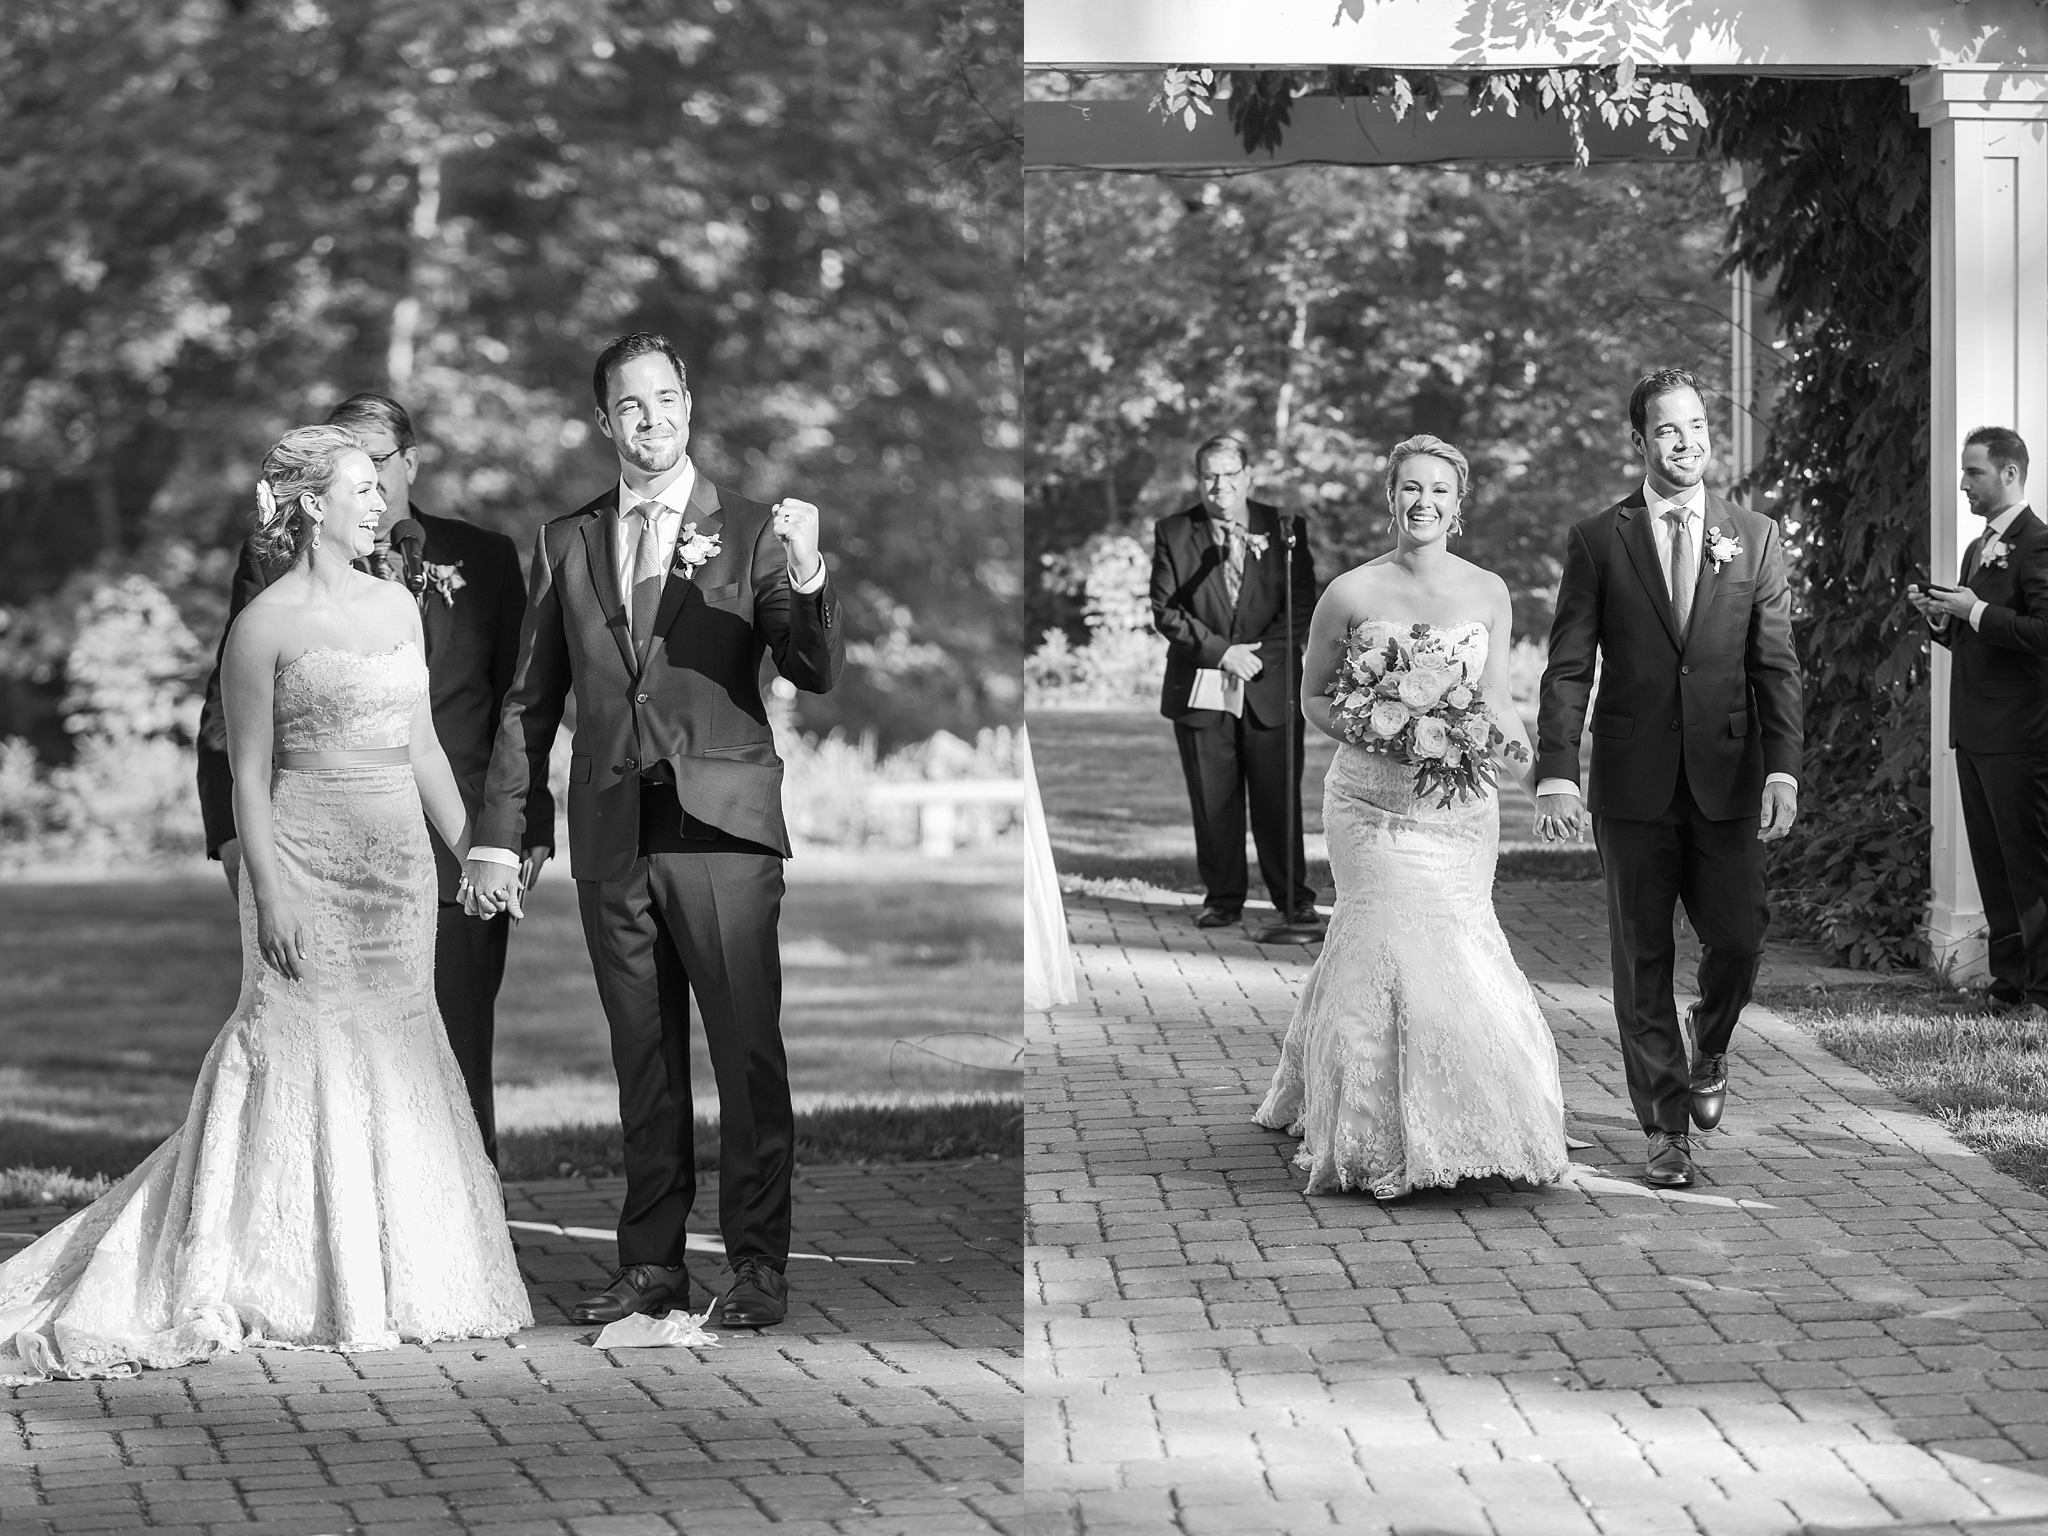 fun-candid-laid-back-wedding-photos-at-wellers-carriage-house-in-saline-michigan-and-at-the-eagle-crest-golf-resort-by-courtney-carolyn-photography_0074.jpg